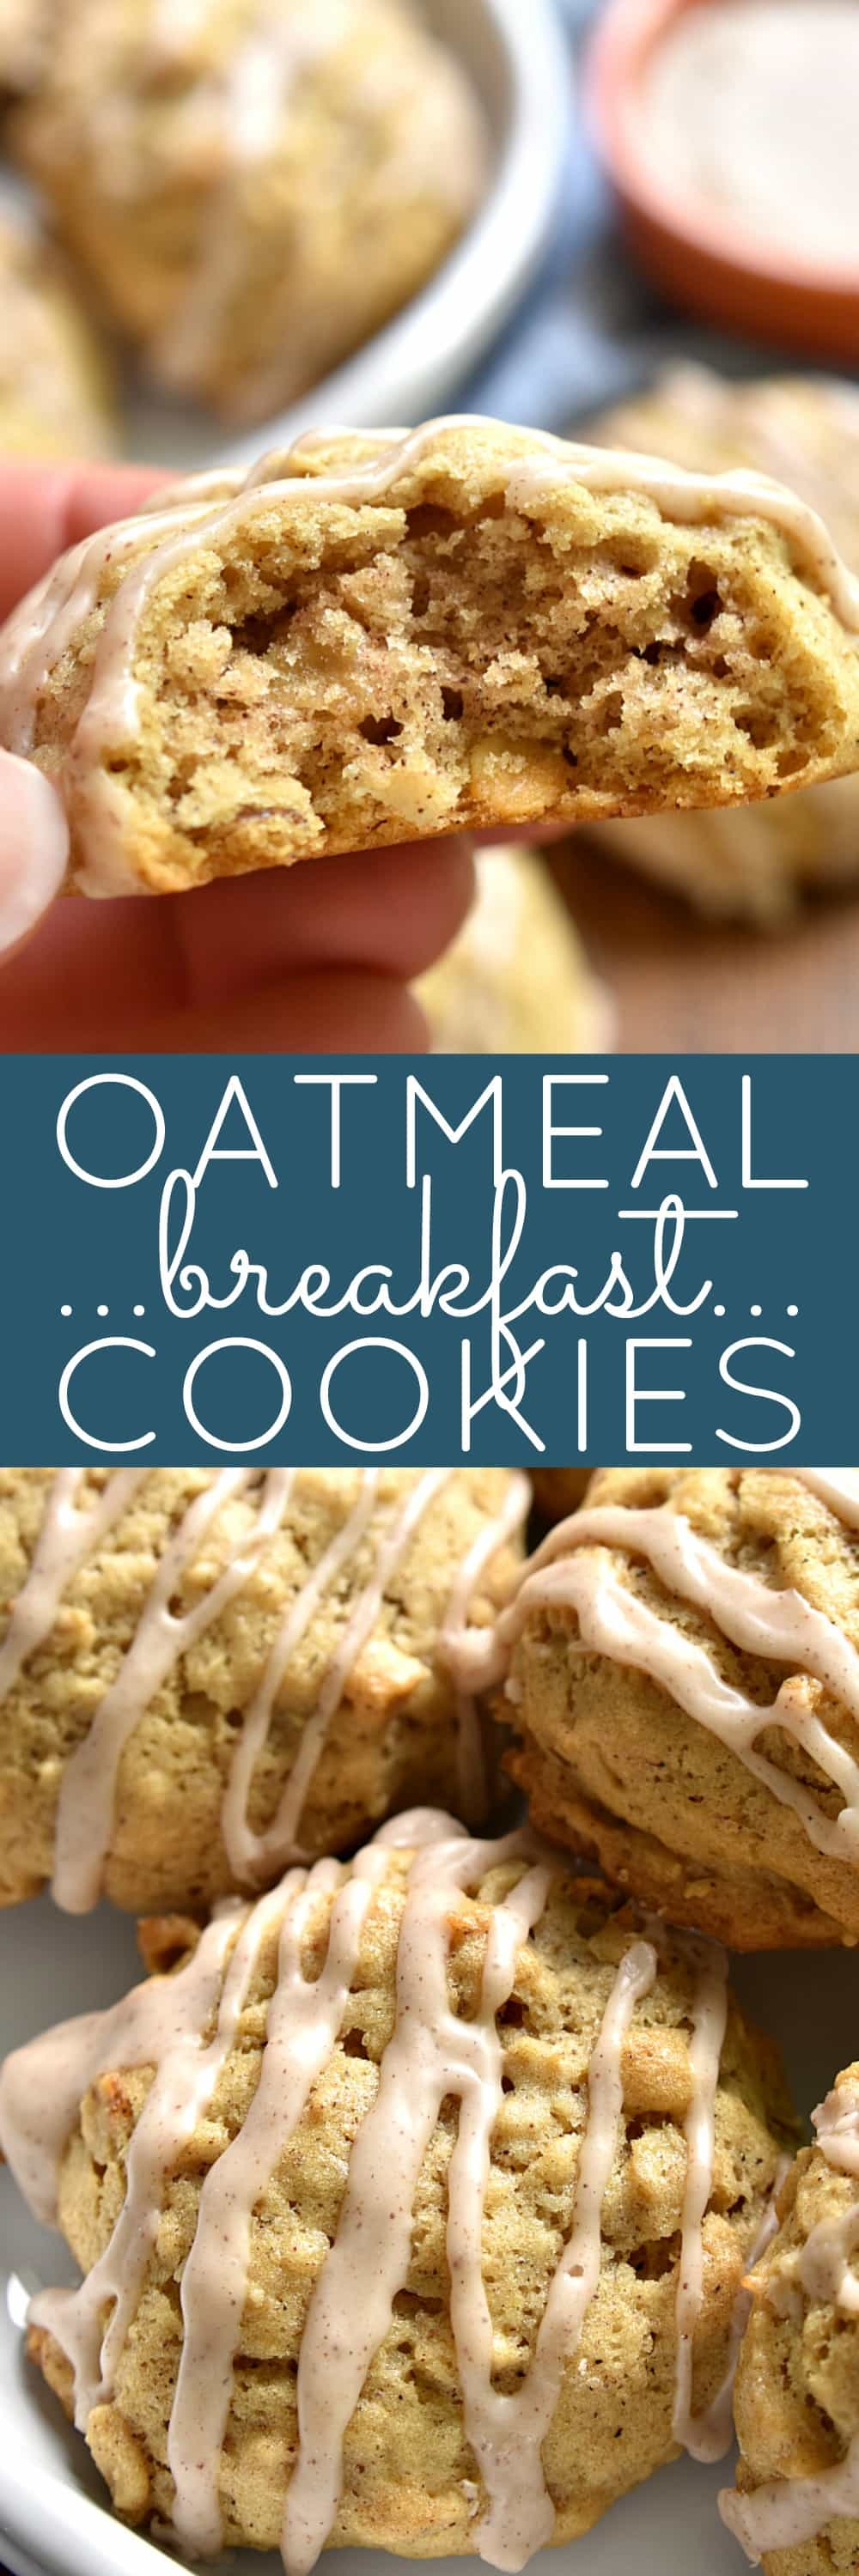 These Oatmeal Breakfast Cookies are packed with flavor and perfect for busy mornings! Topped with a sweet cinnamon glaze, they're every kid's dream....and just in time for back to school!